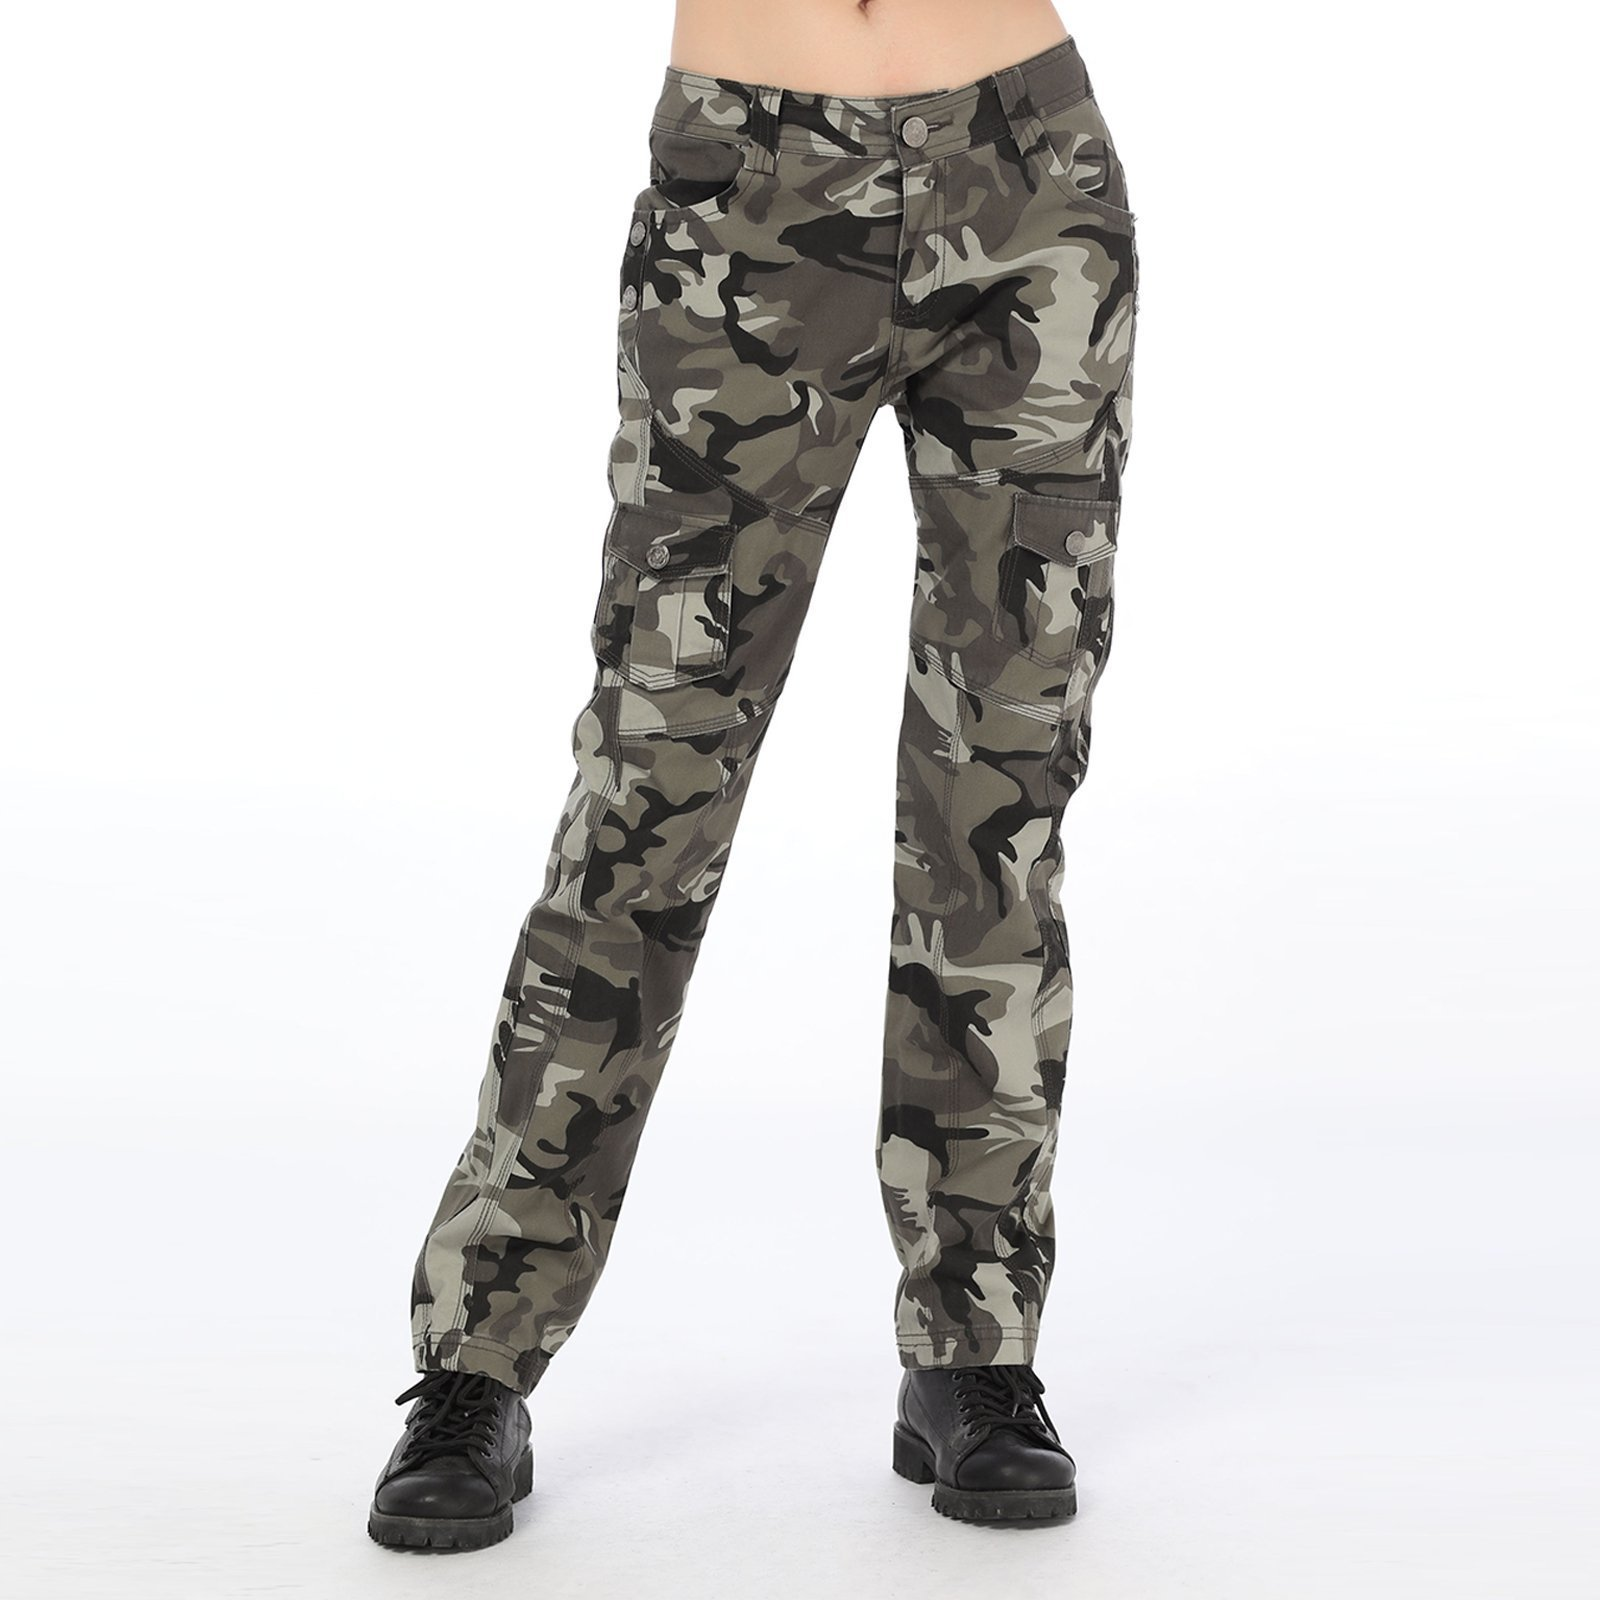 MEXUER Women Long Pants Camo Army Loose Military Style Pants for Outdoor Sports by MEXUER